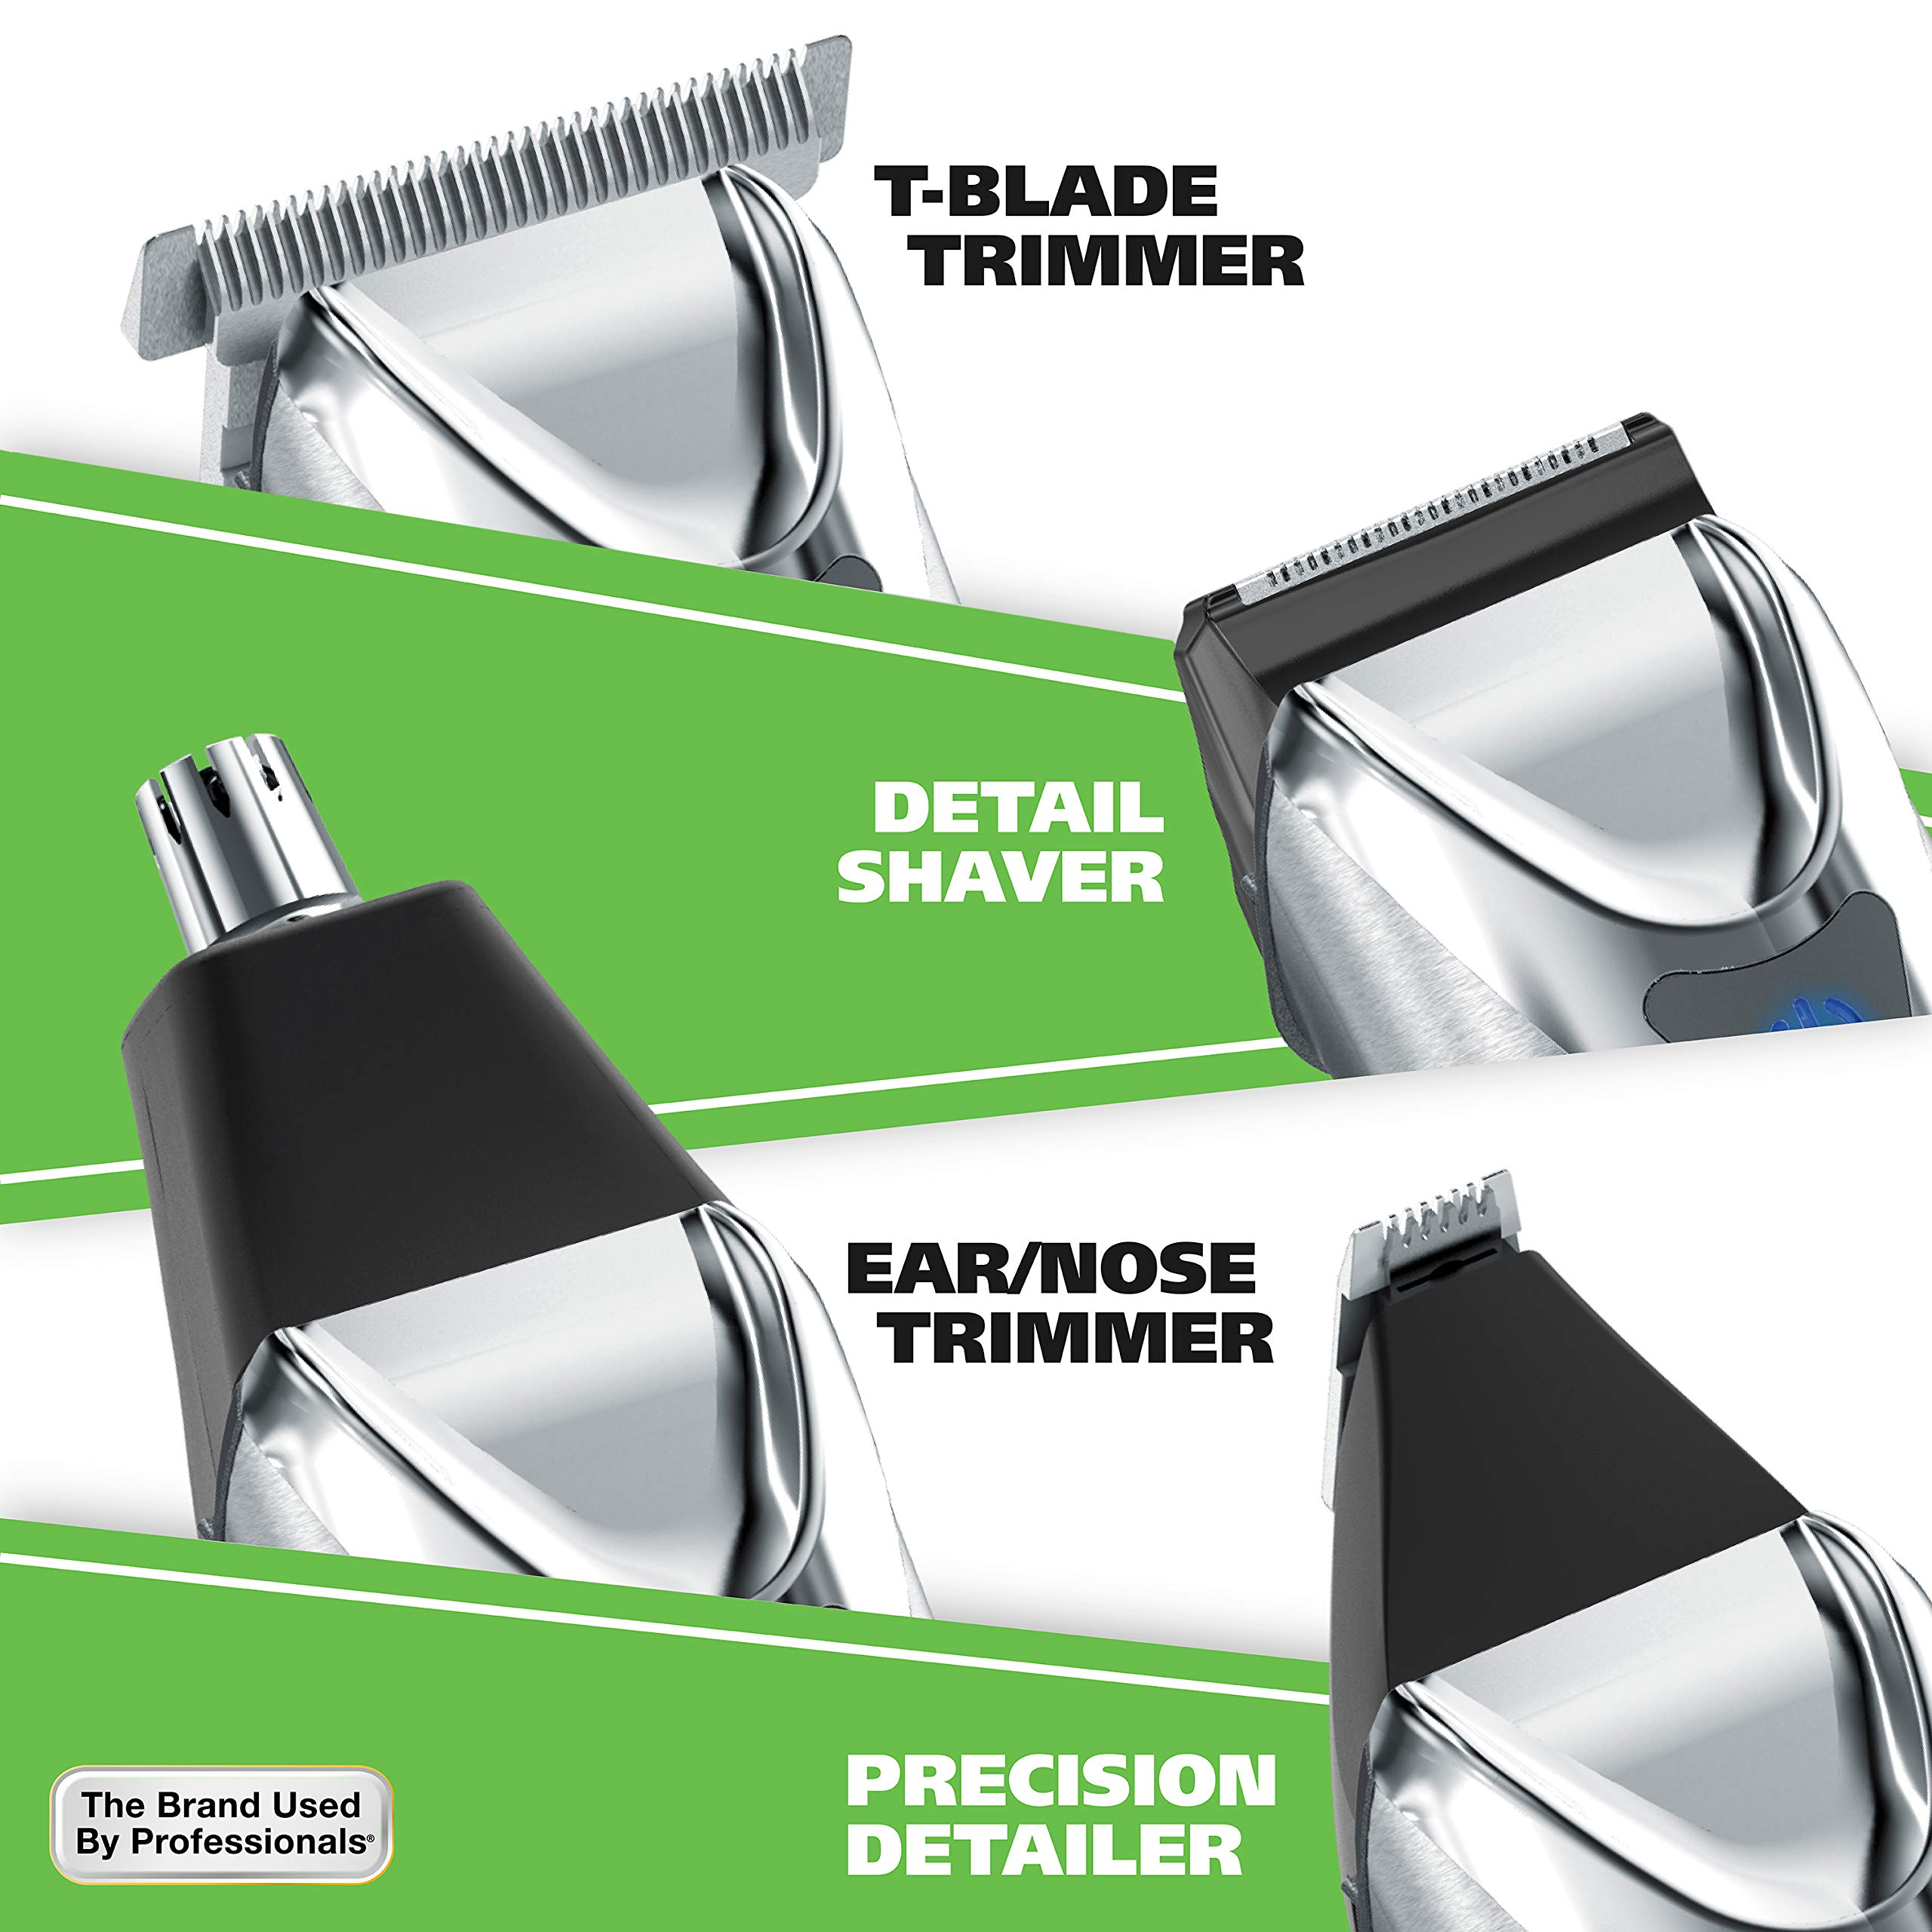 Wahl Clipper Stainless Steel Lithium Ion Plus Beard Trimmers for Men, Hair Clippers and Shavers, Nose Ear Trimmers, Rechargeable All in One Men's Grooming Kit, by the Brand used by Professionals #9818 by WAHL (Image #4)